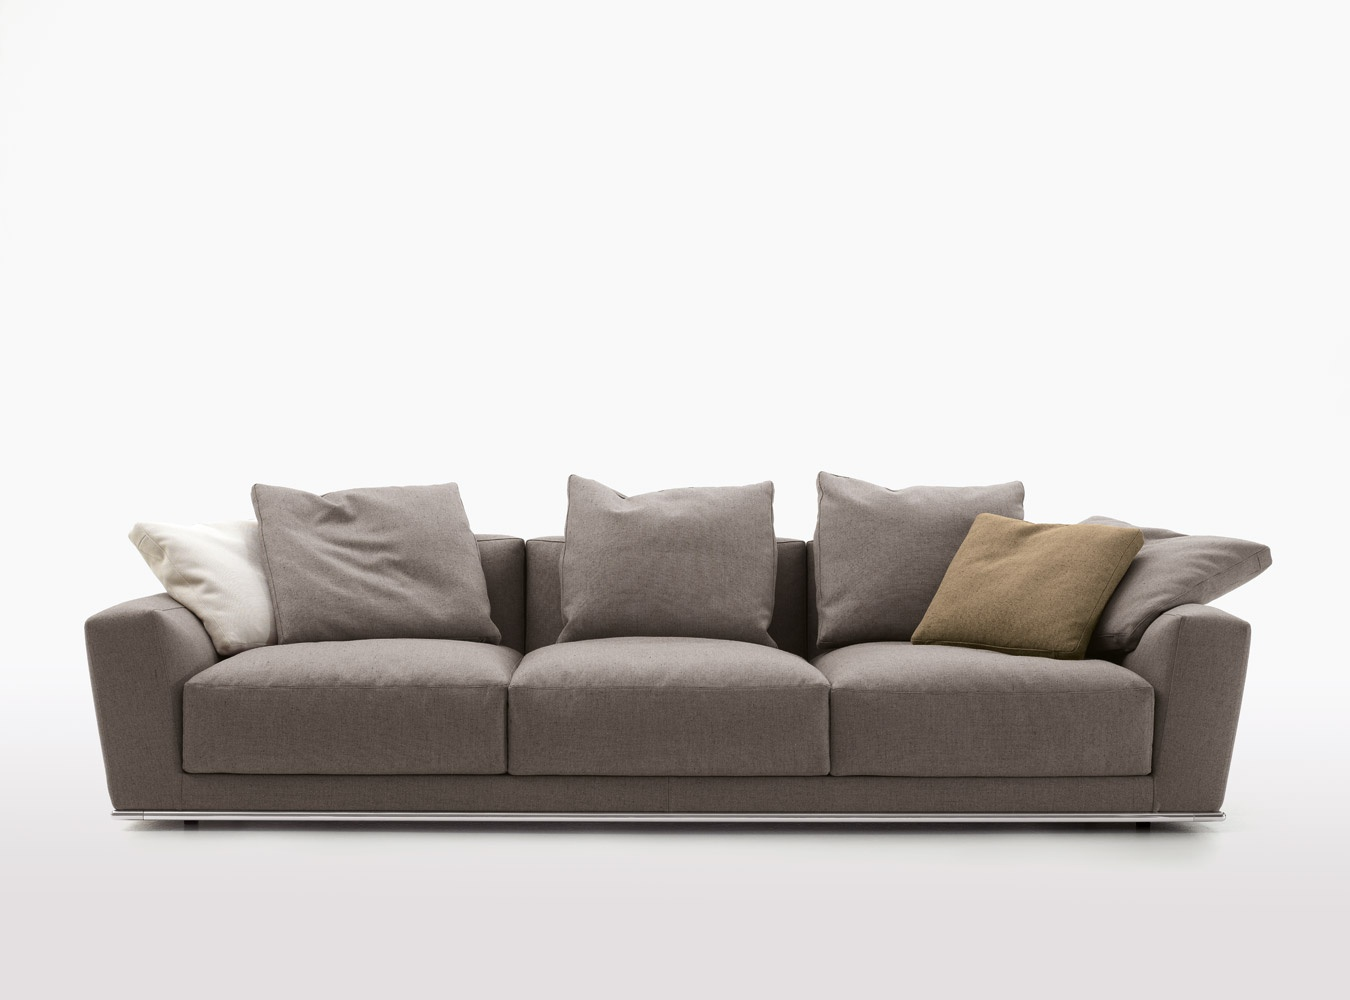 double sofa luis b b italia luxury furniture mr. Black Bedroom Furniture Sets. Home Design Ideas